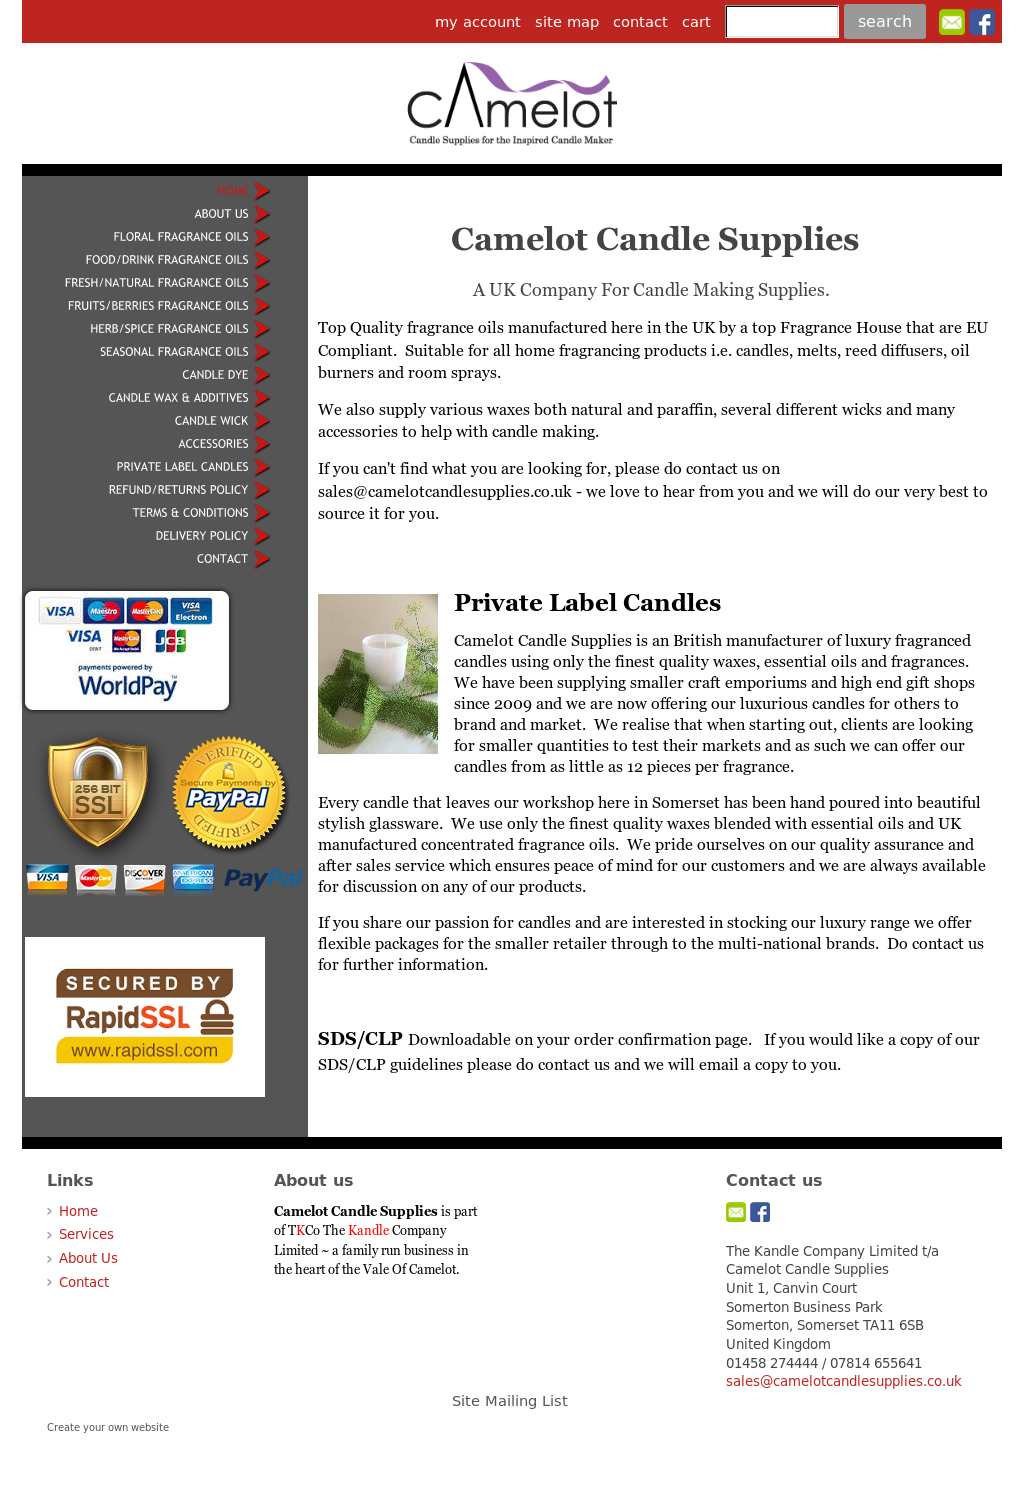 Camelot Candle Supplies Competitors, Revenue and Employees